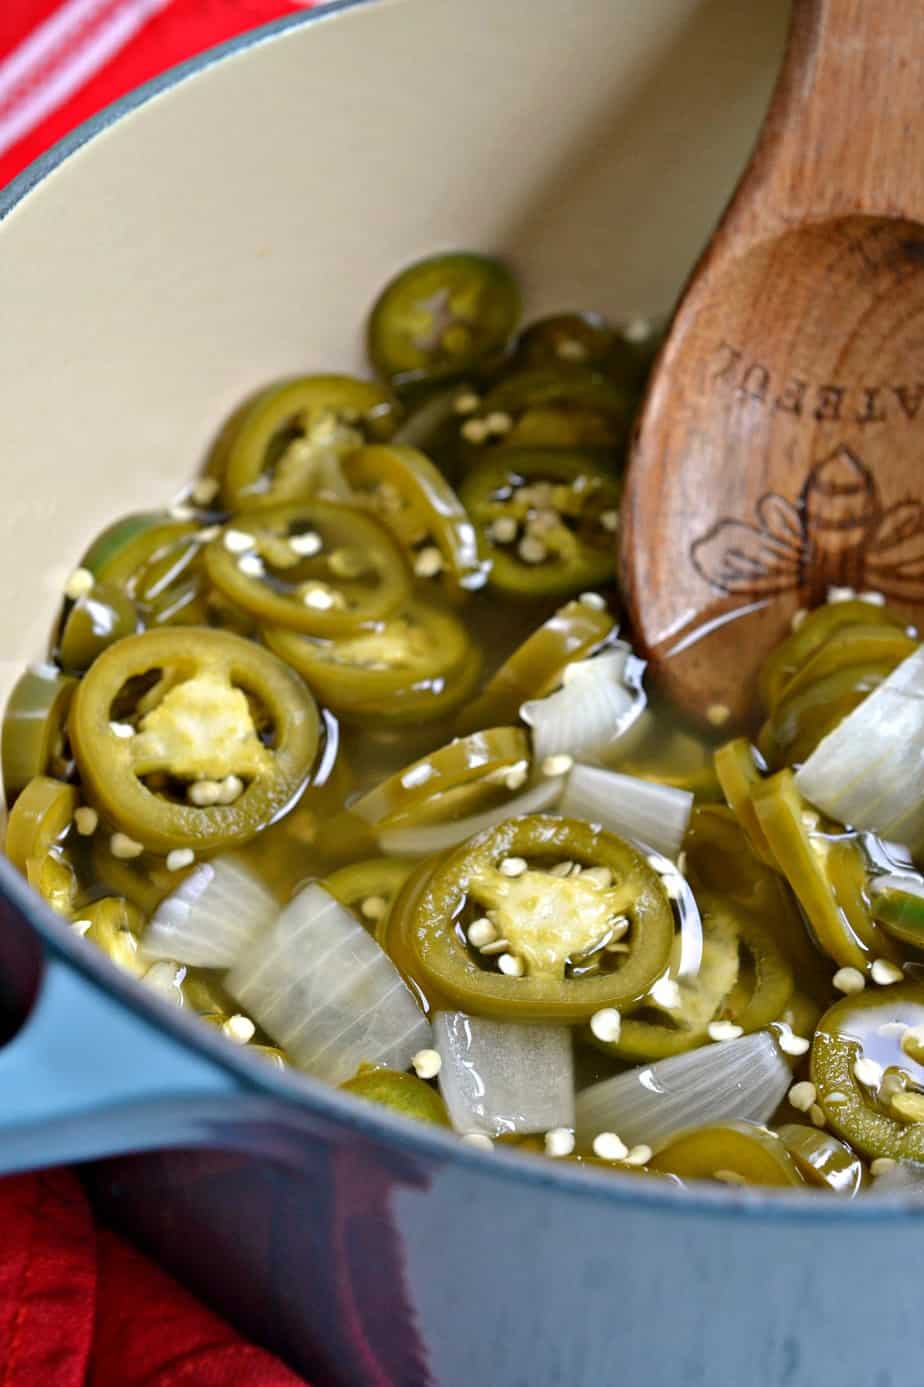 Easy Pickled Jalapenos are slightly sweet tame peppers perfect for snacking, sandwiches, burgers and adding to recipes.